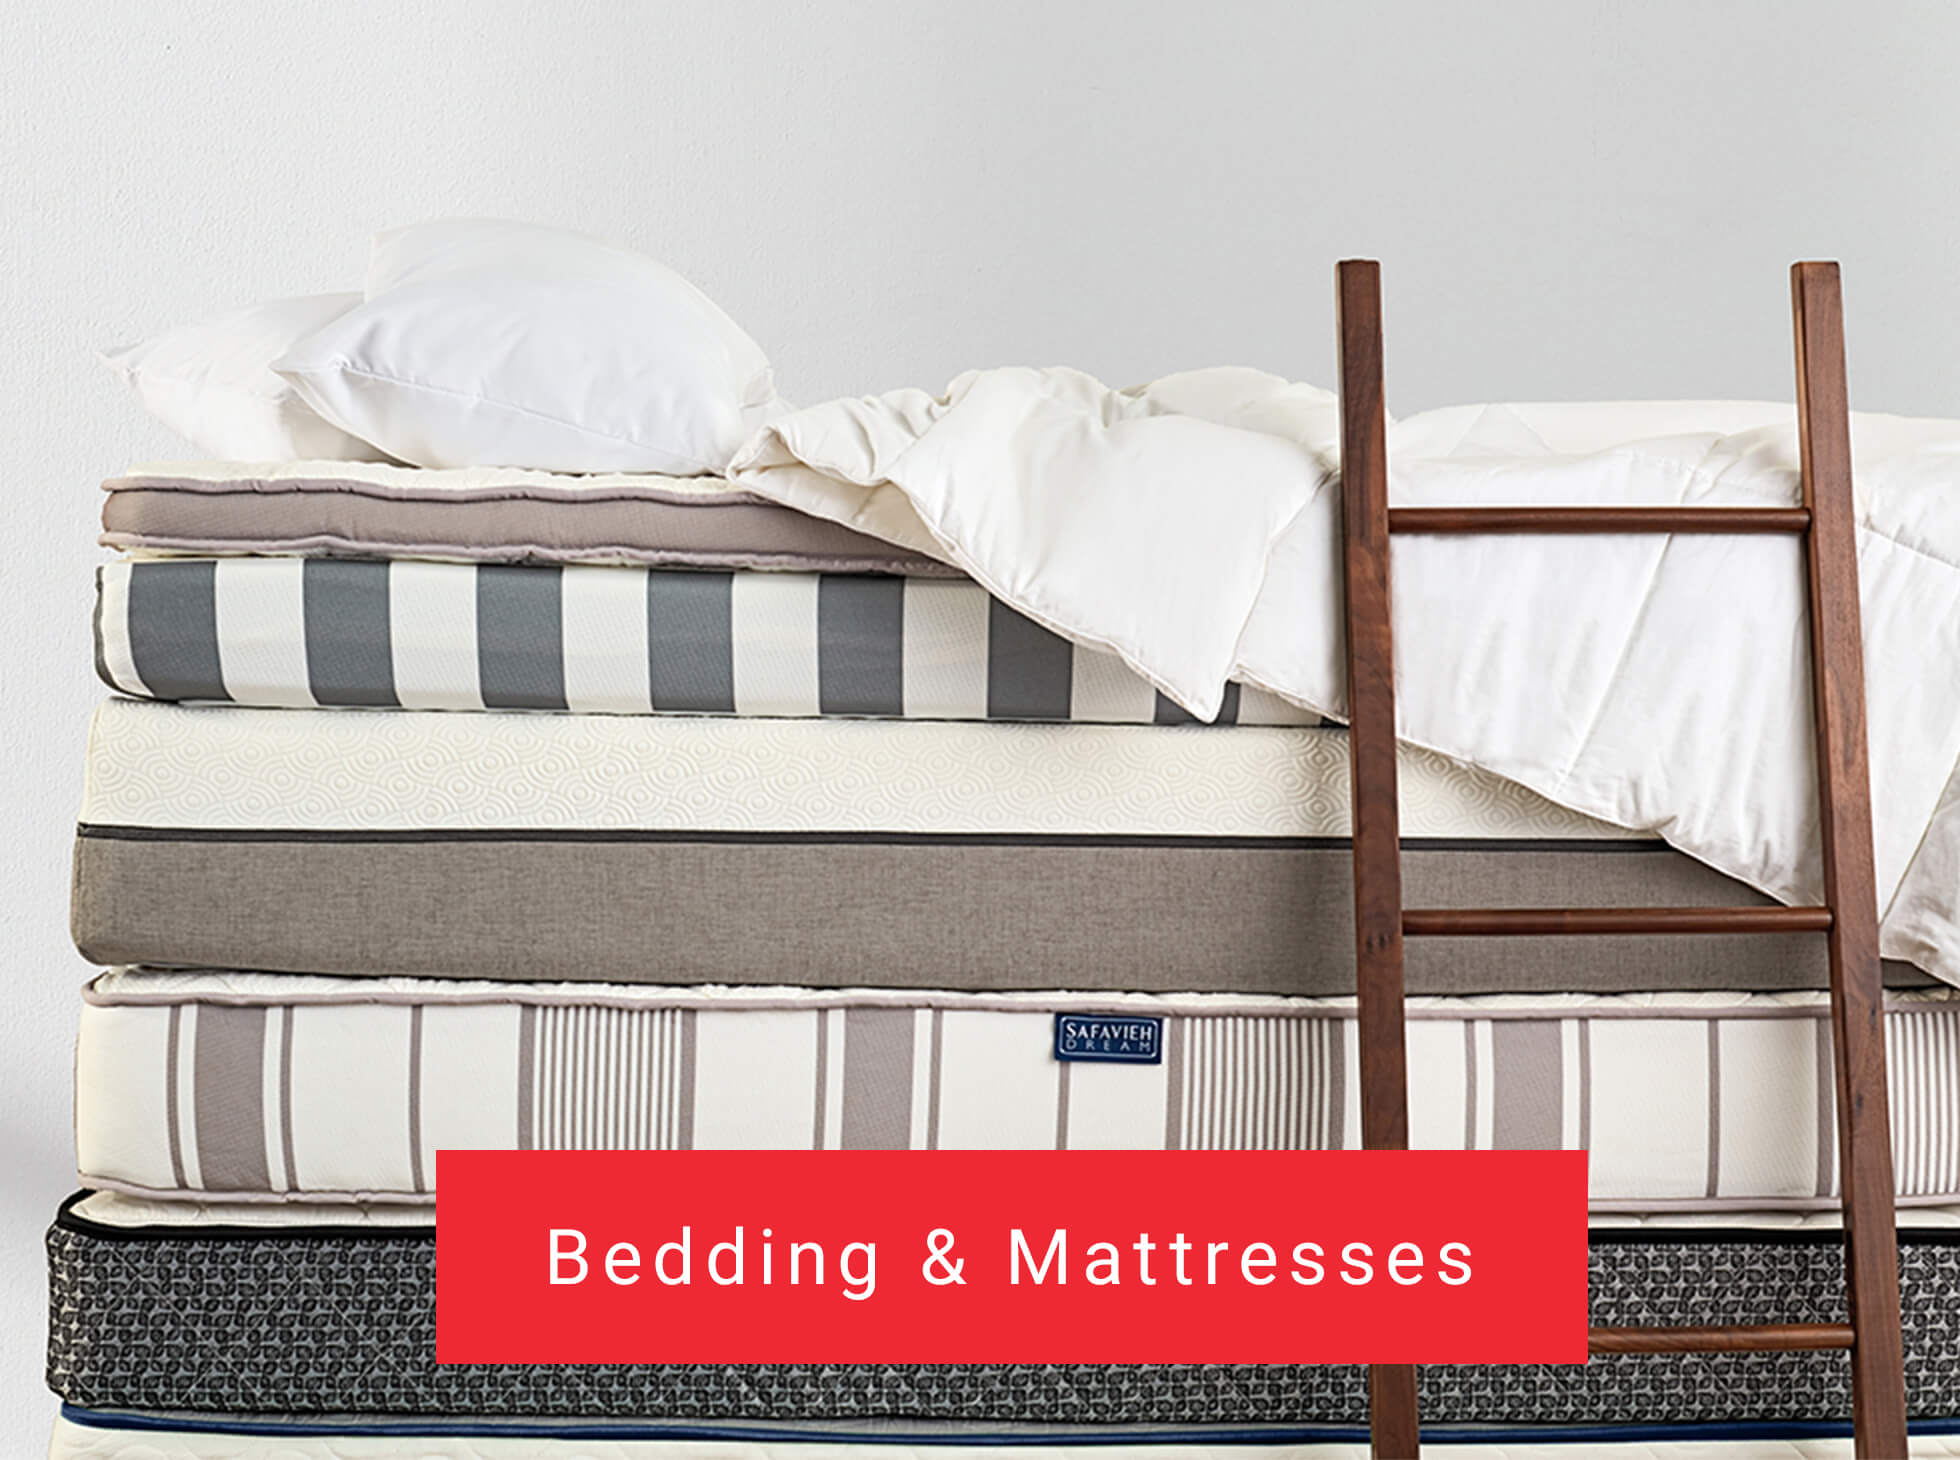 Bedding & Mattresses